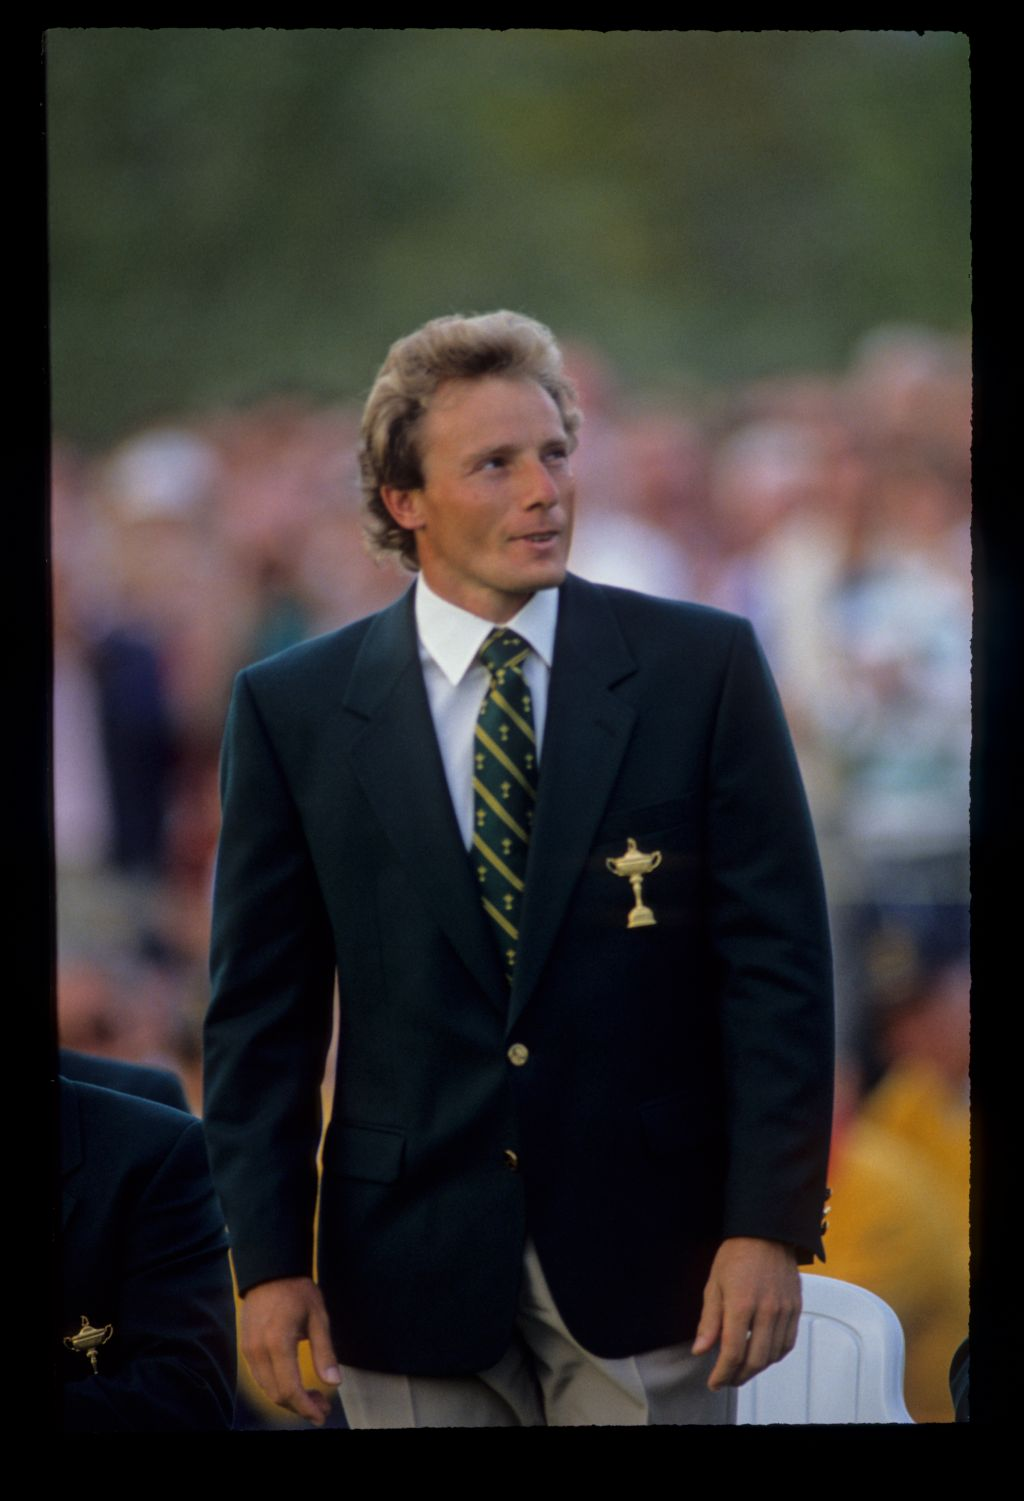 Bernhard Langer being introduced at the 1989 Ryder Cup